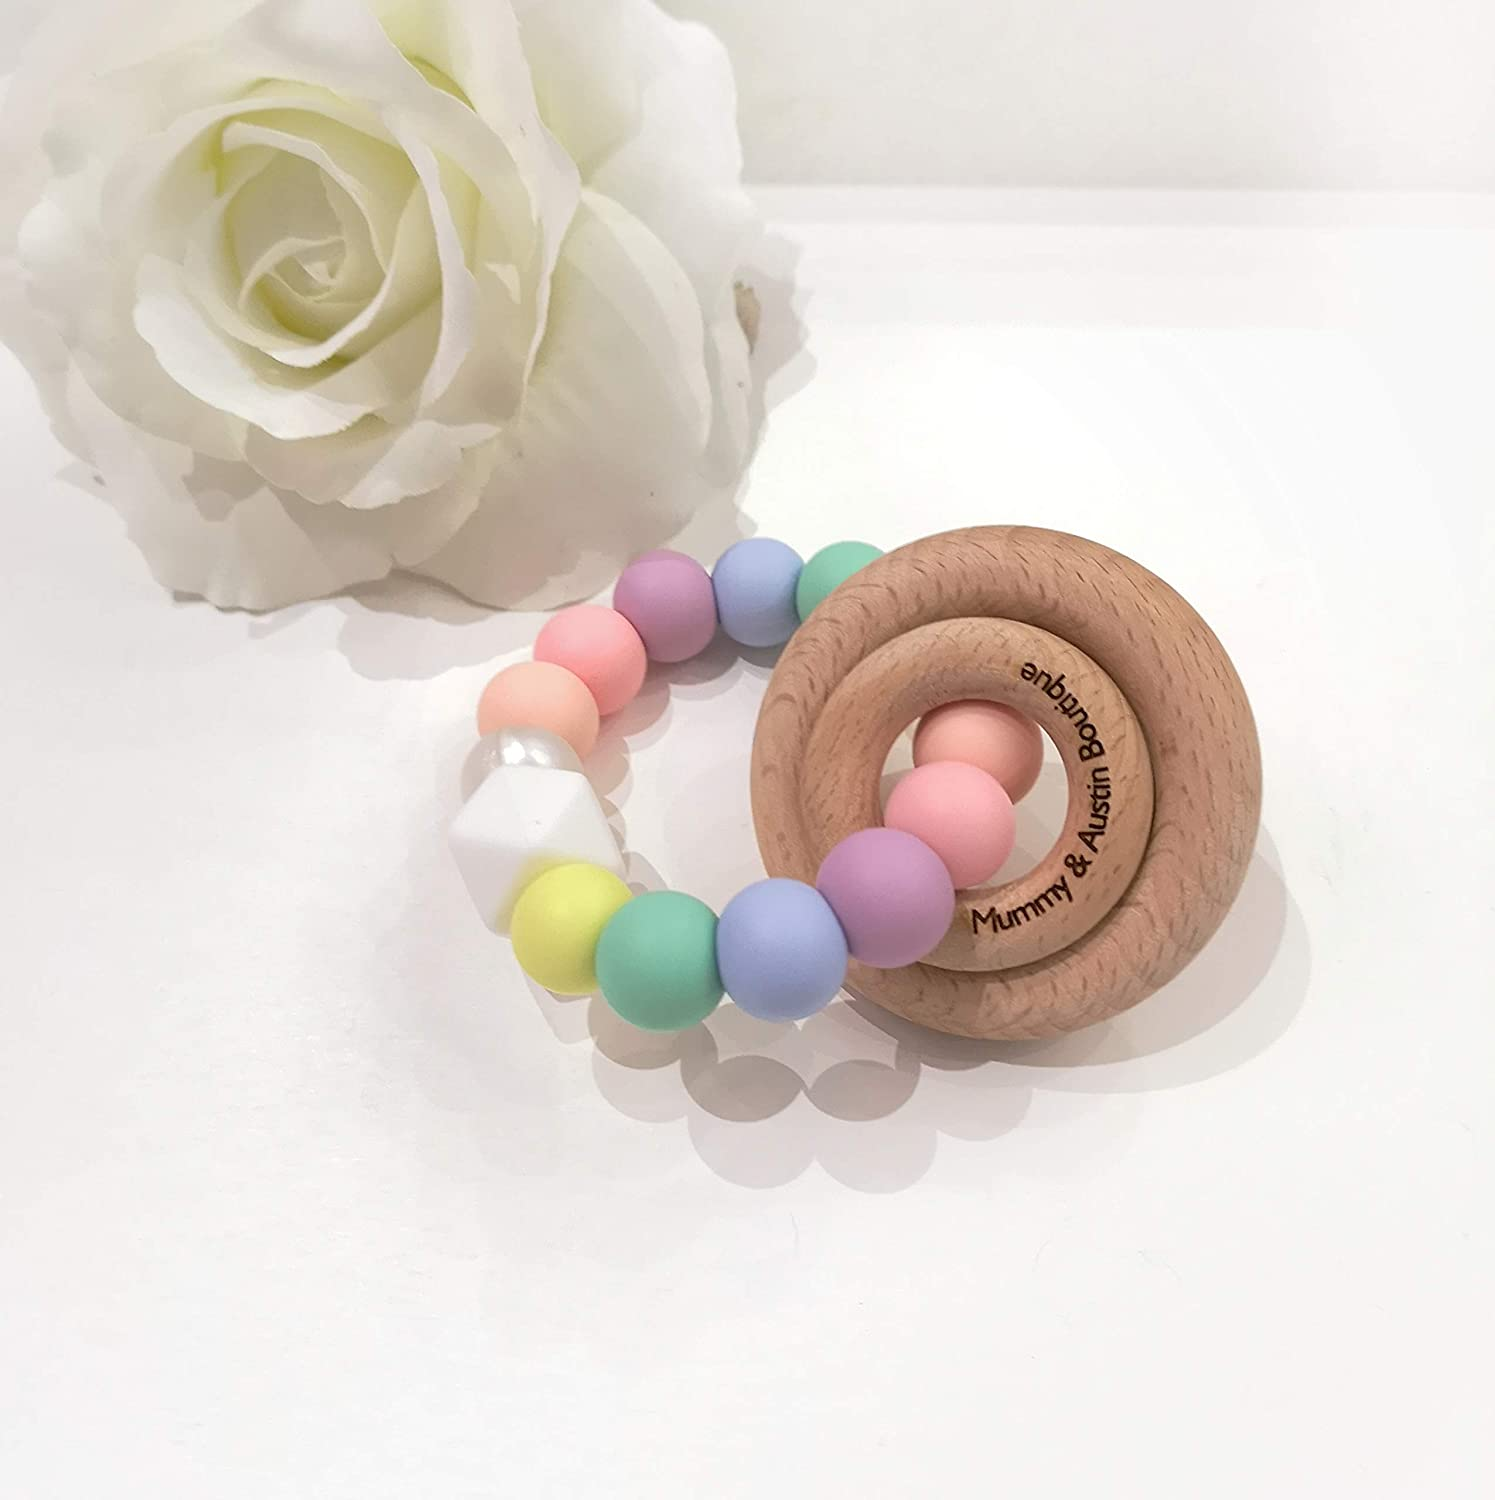 Bright Fun Rainbow Pastel Teething Ring Teether Aid Toy Wooden Rattle BPA FREE Silicone Bead New Mum Baby Shower Gift Fully CE Certified Handmade UK CANDYFLOSS